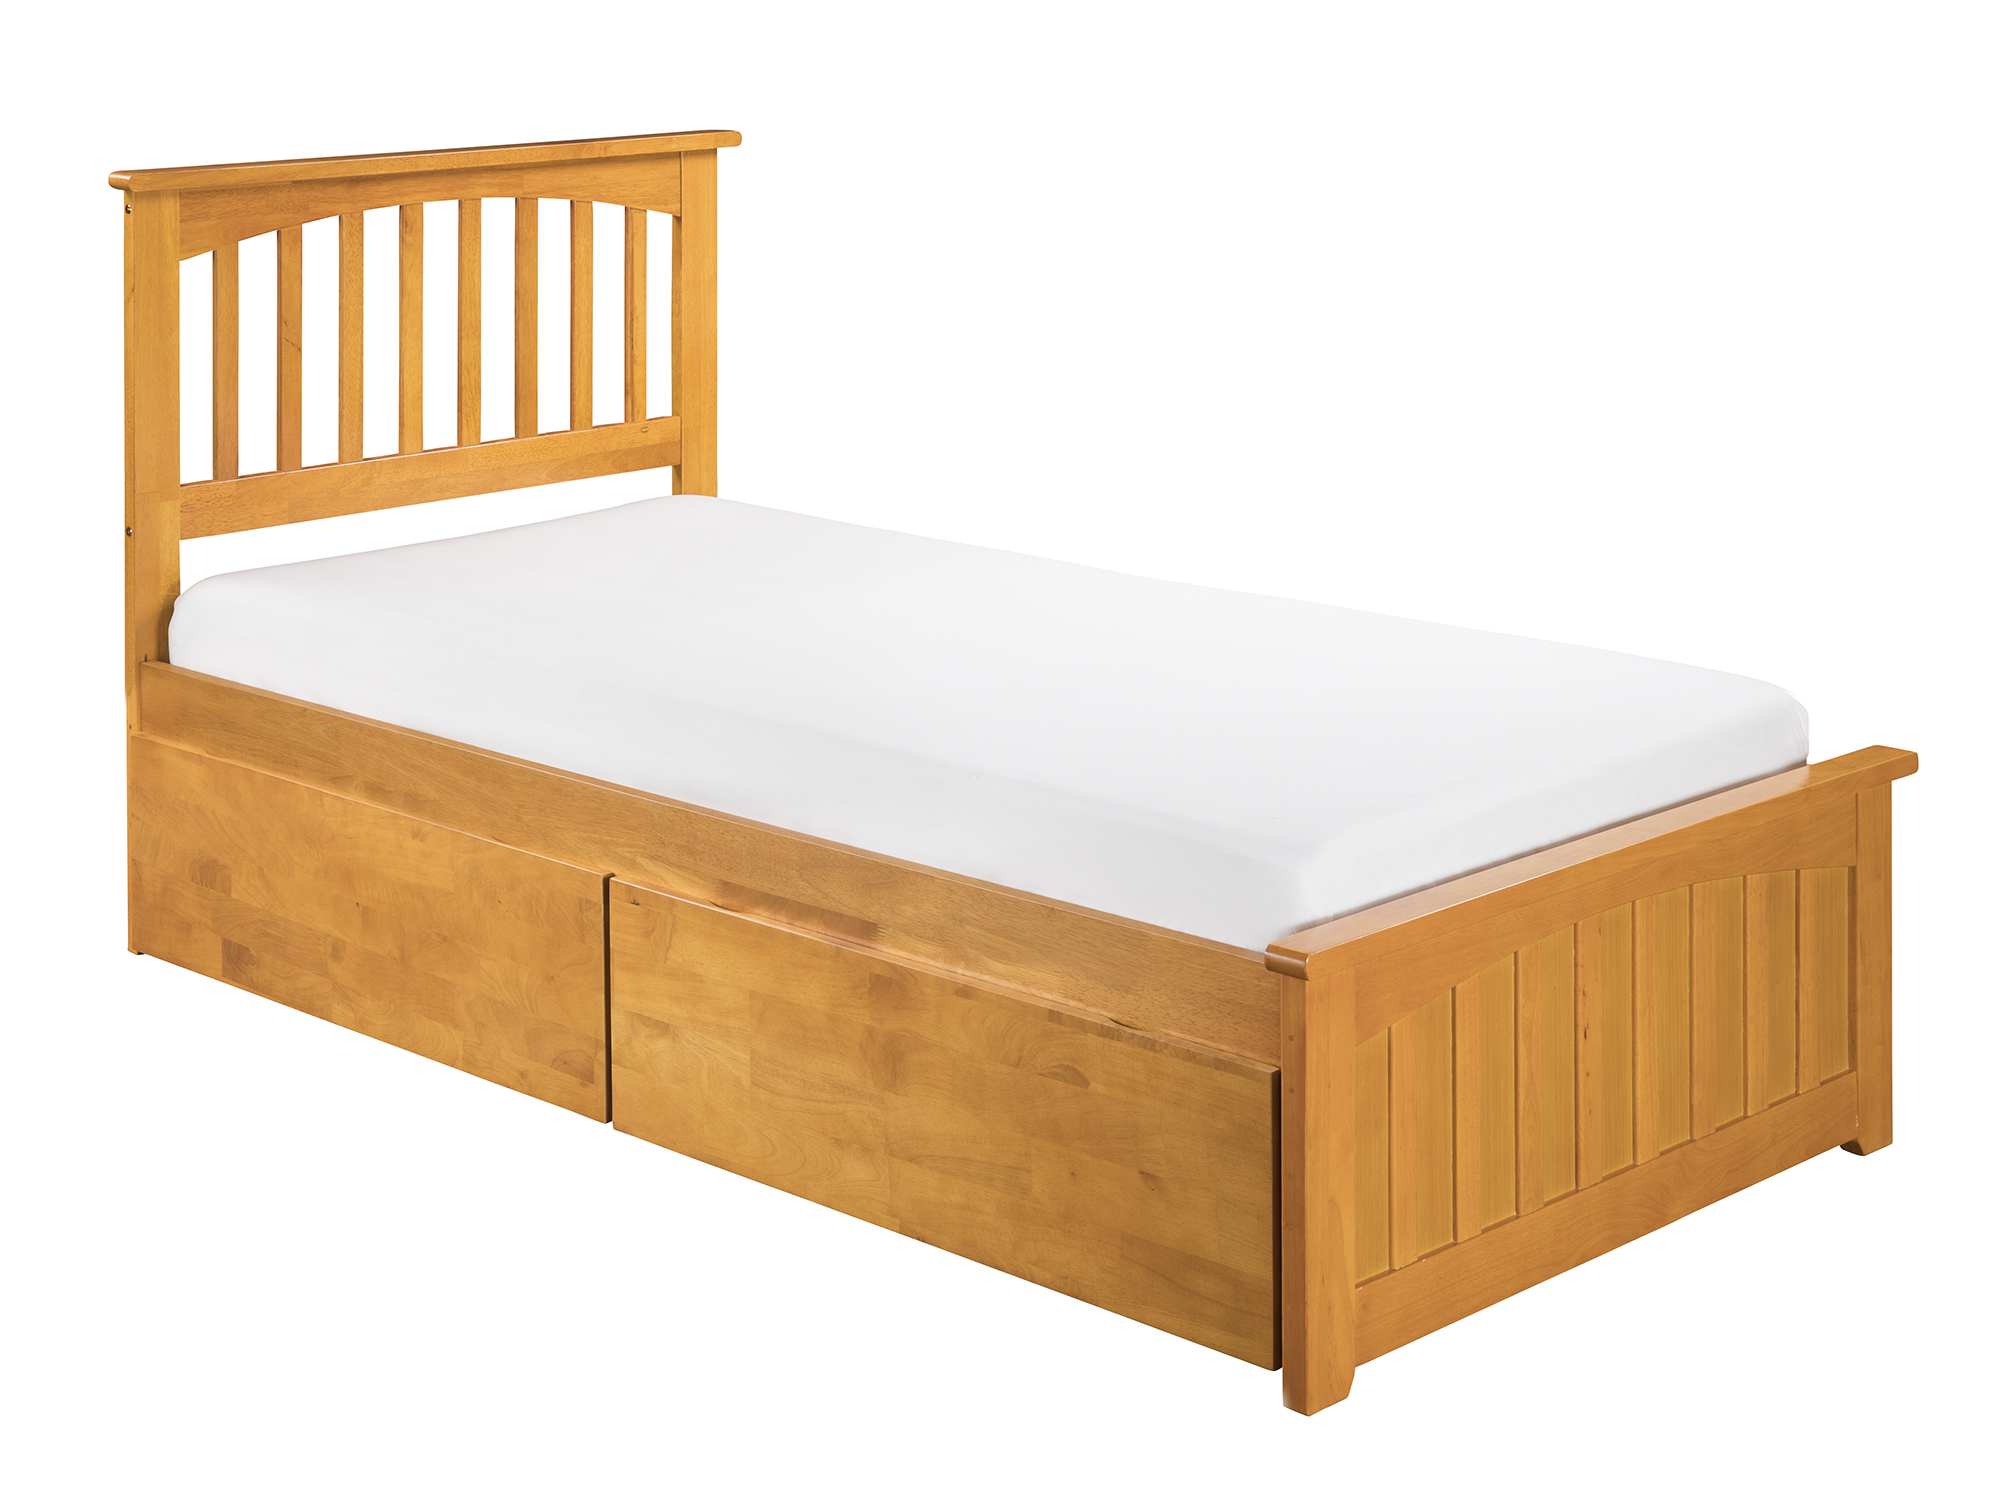 Mission Twin Xl Platform Bed With Matching Foot Board 2 Urban Drawers In Caramel